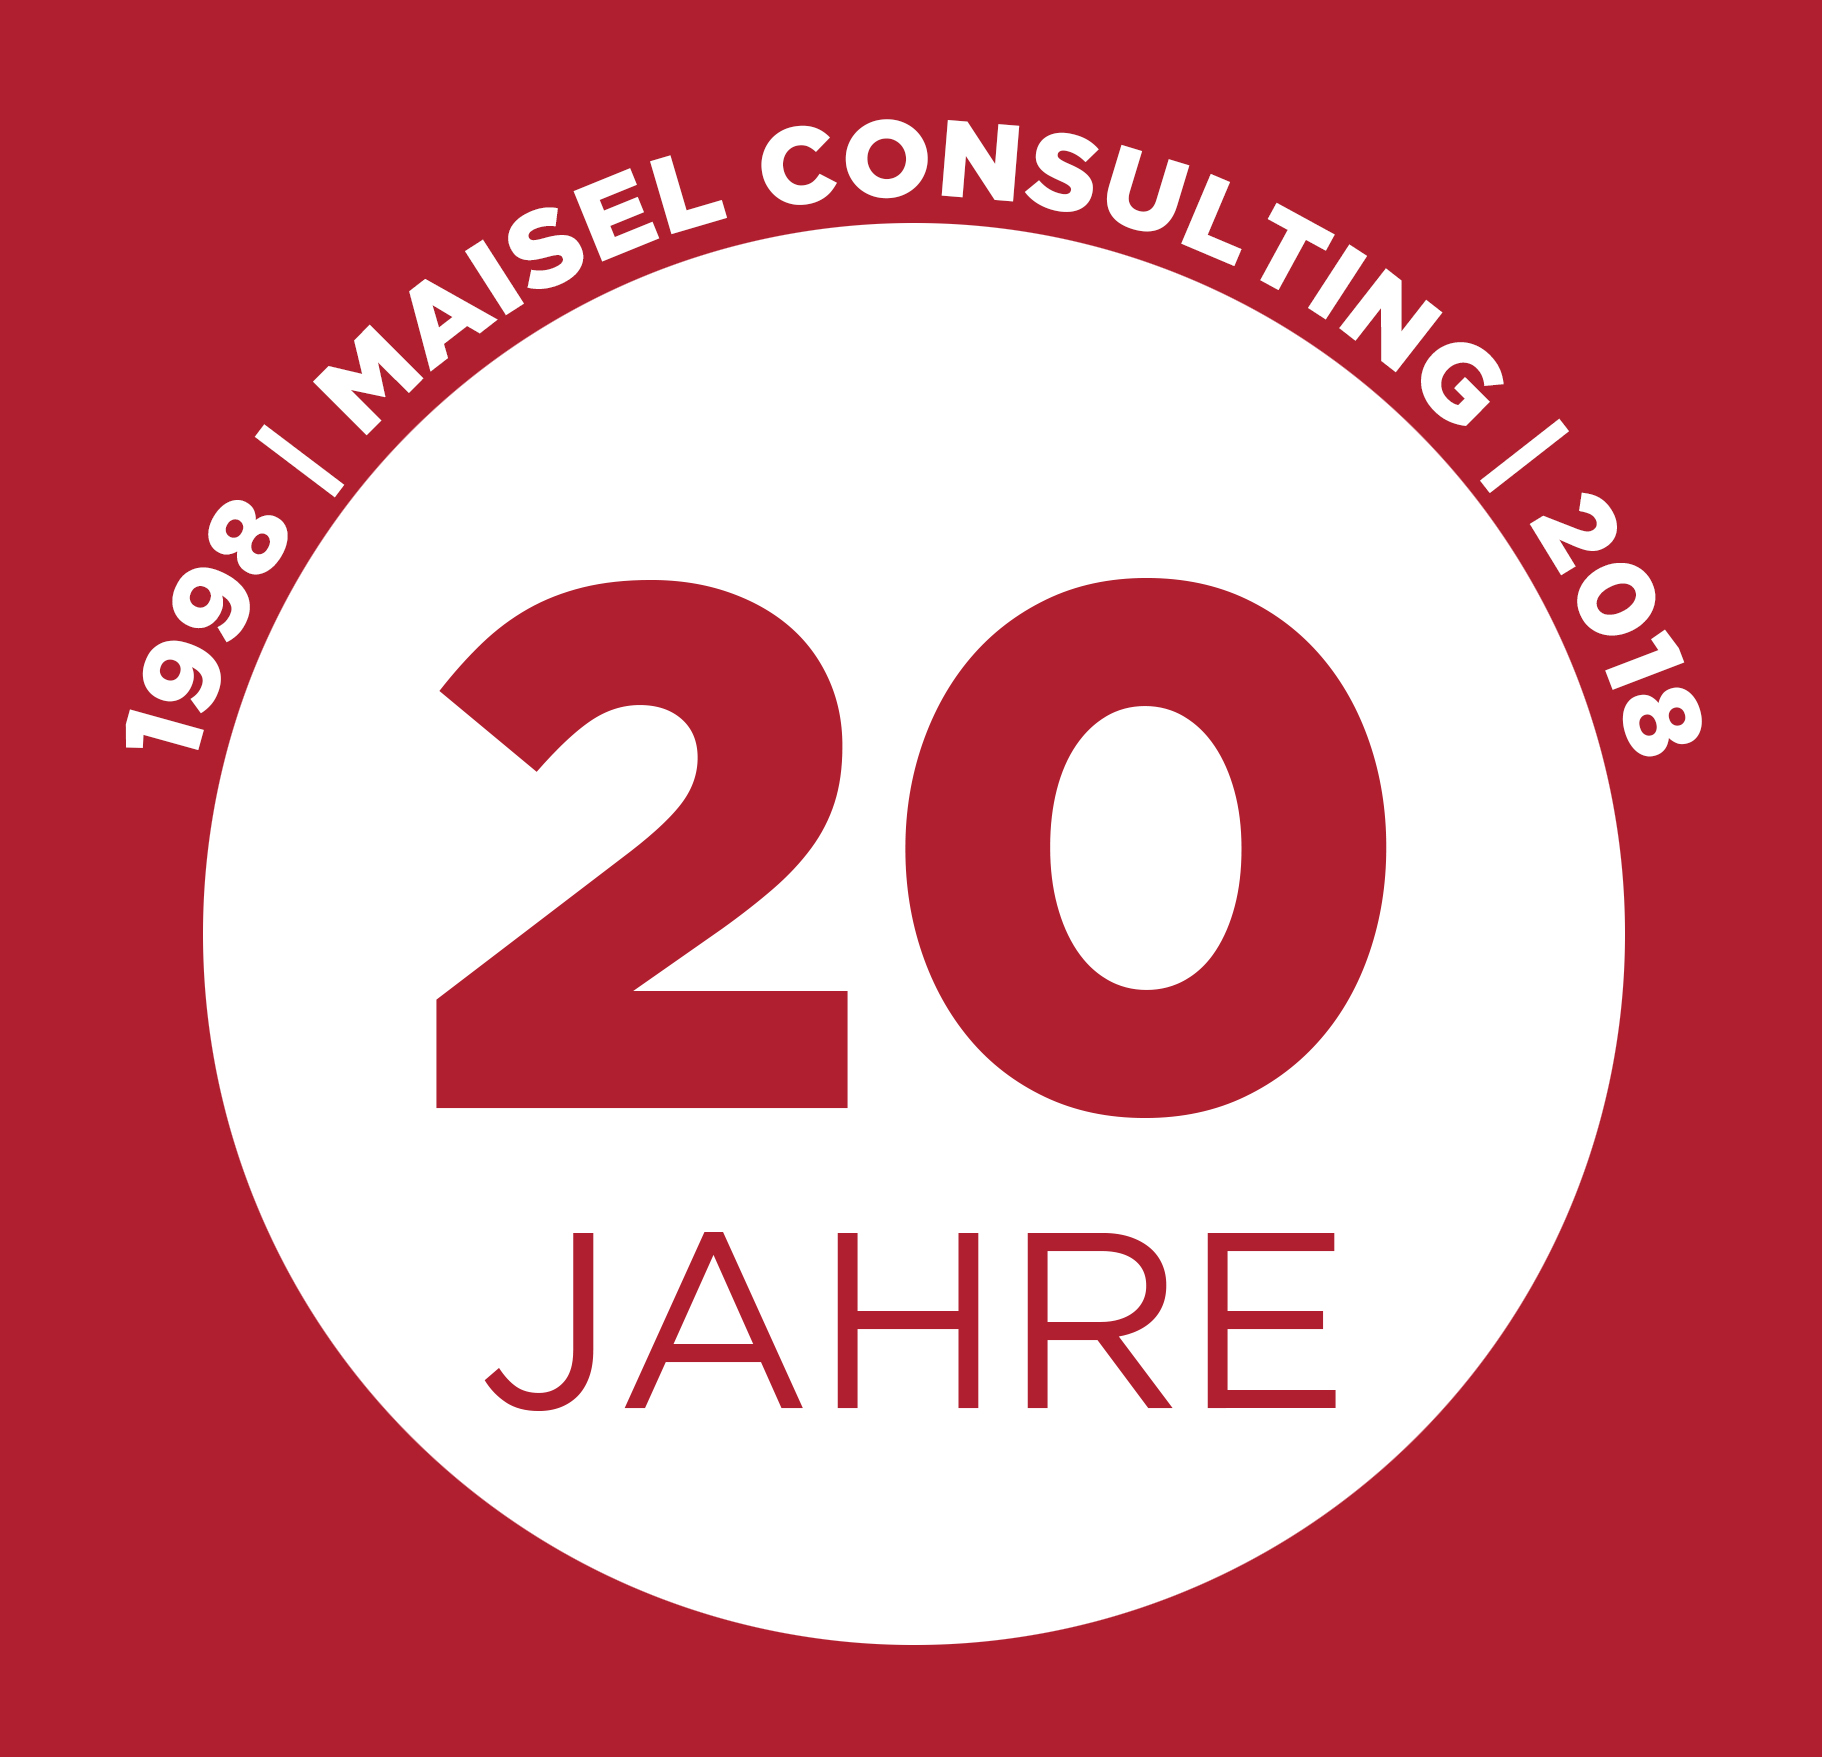 SMIC-Maisel-consulting-Web-Jubiläumslogo-rot